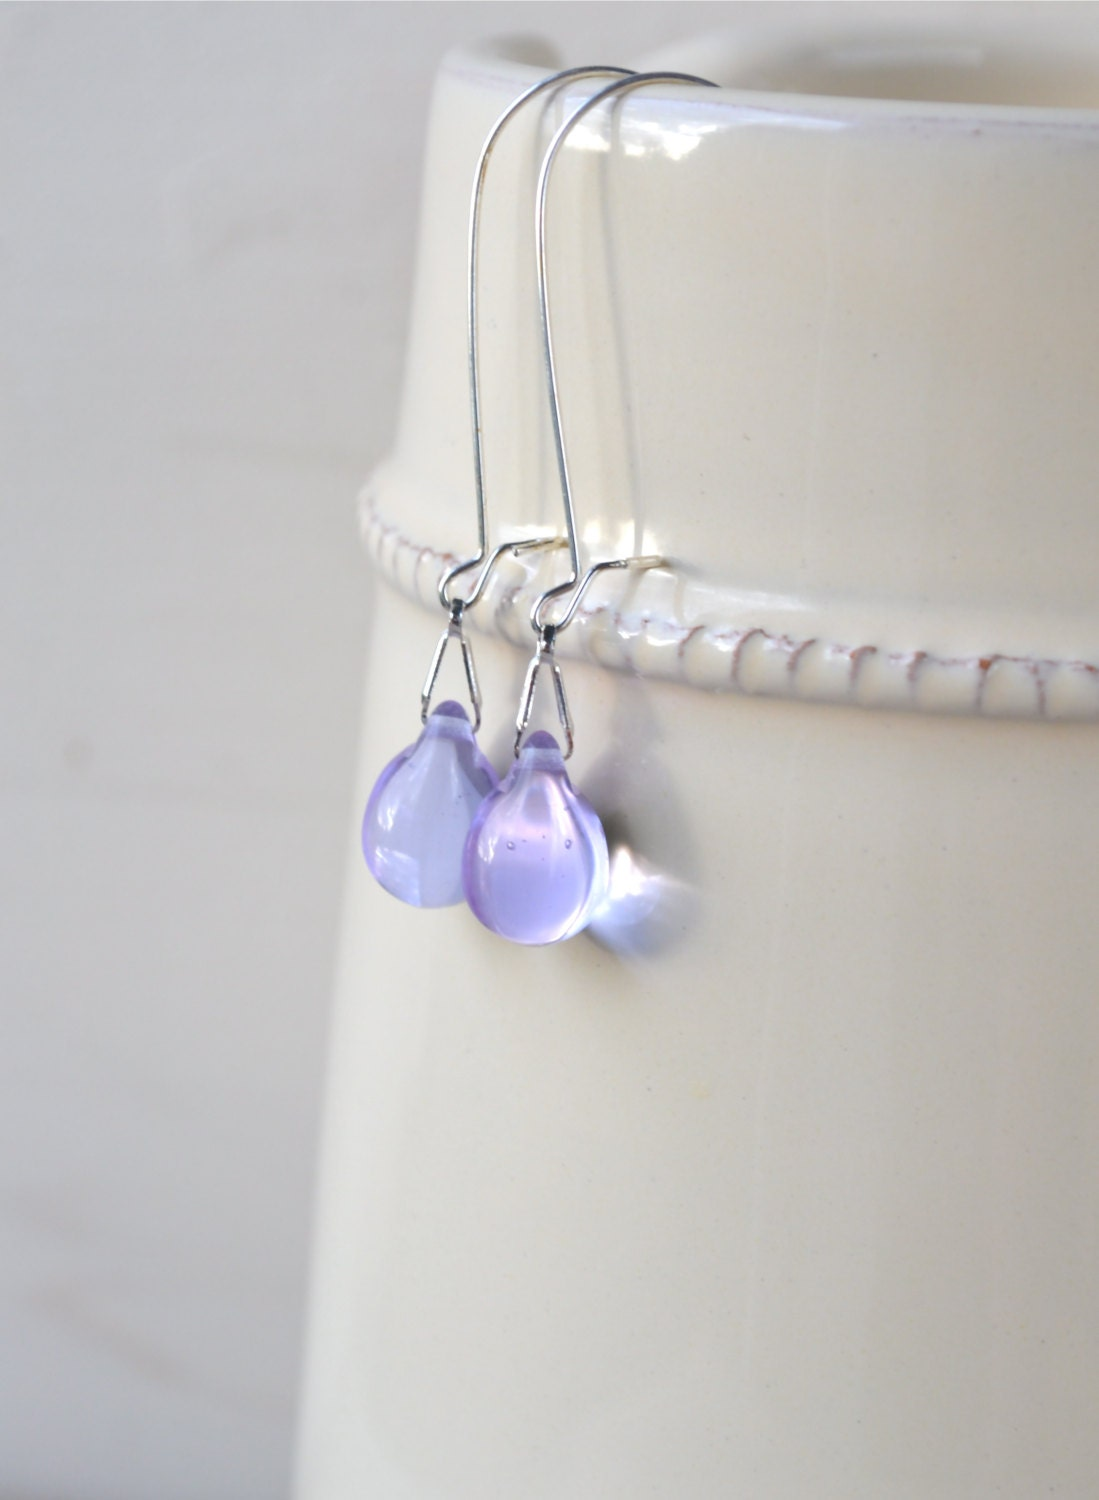 Lavender Earrings, Pale Violet Earrings, Delicate Jewelry, Lavender Wedding, Pale Purple Long Dangle Earrings, Bridesmaid Gift, Etsy UK - Phoebedreams